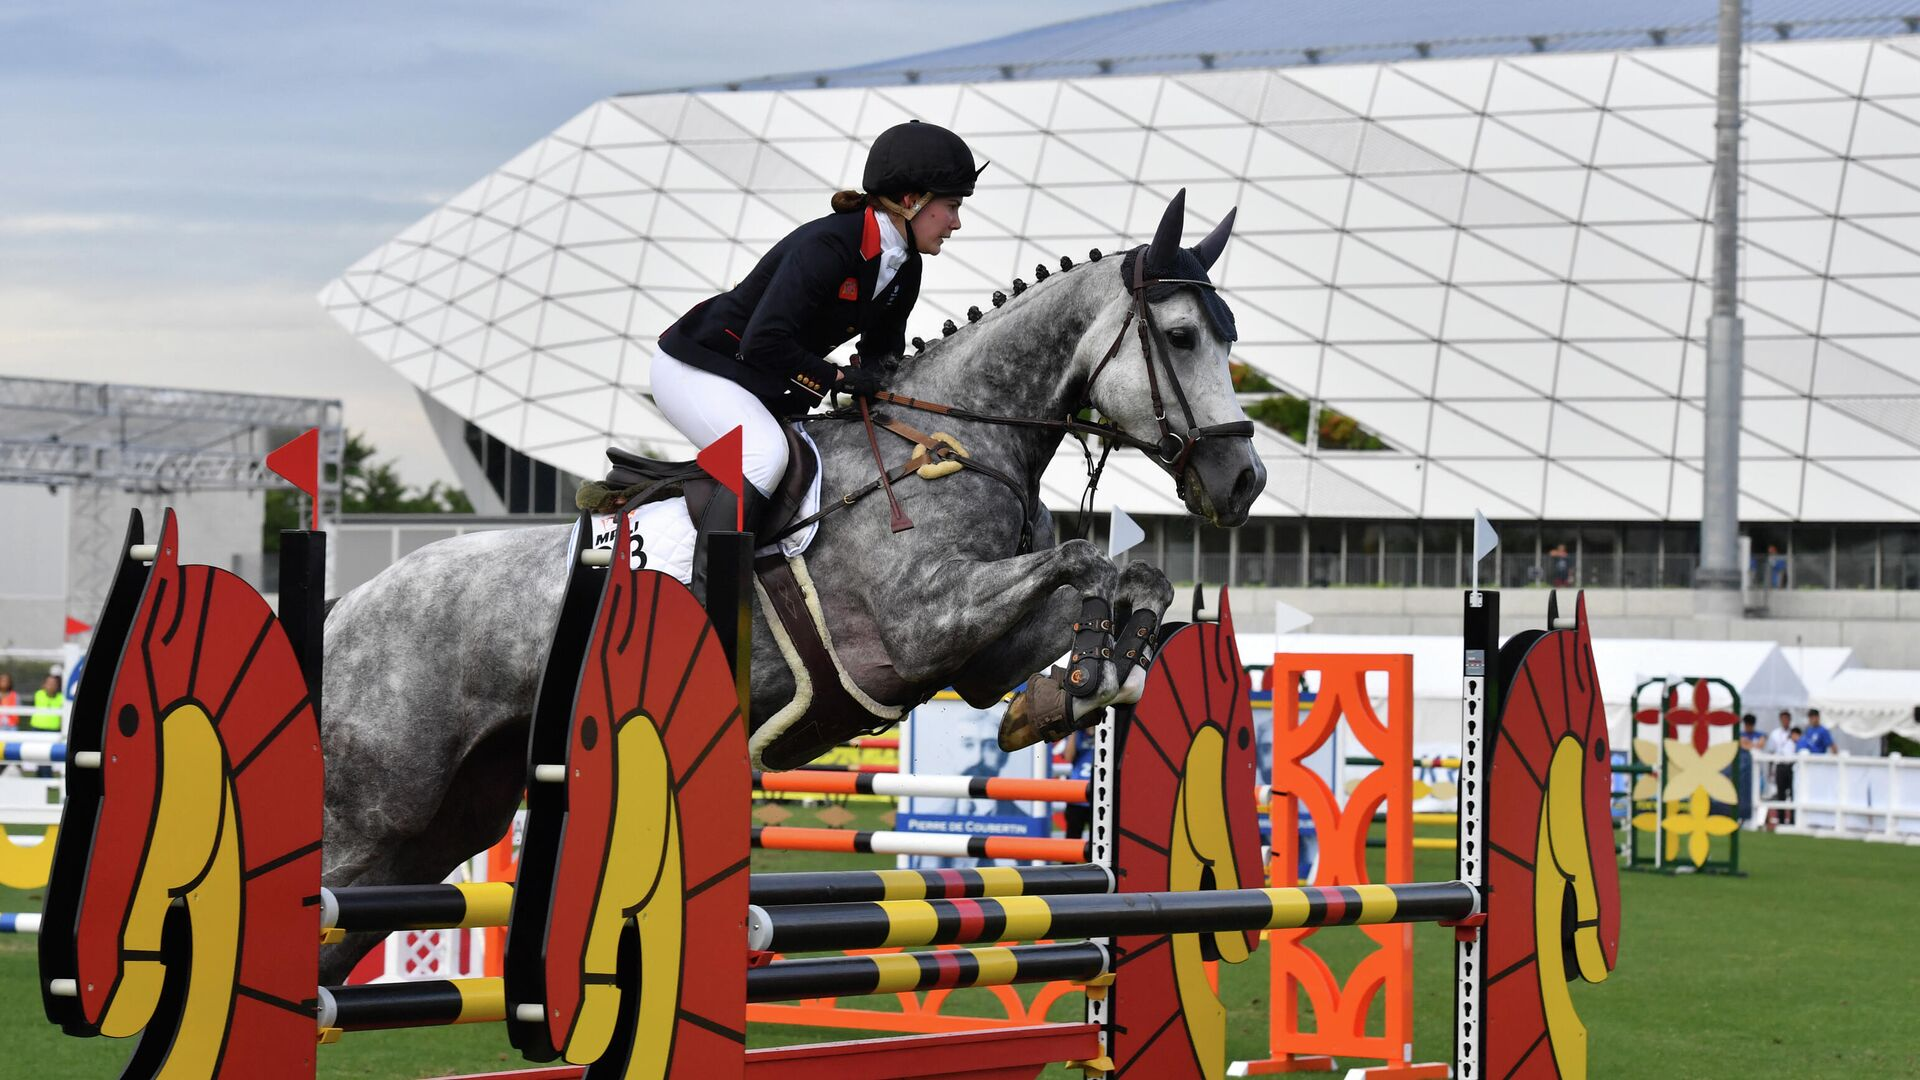 Britain's Kate French jumps during women's individual equestrian event during the UIPM World Cup modern pentathlon test event for the Tokyo 2020 Olympic Games at the AGF field, next to the Musashino Forest Sport Plaza in Tokyo on June 28, 2019. (Photo by Toshifumi KITAMURA / AFP) - РИА Новости, 1920, 14.05.2021